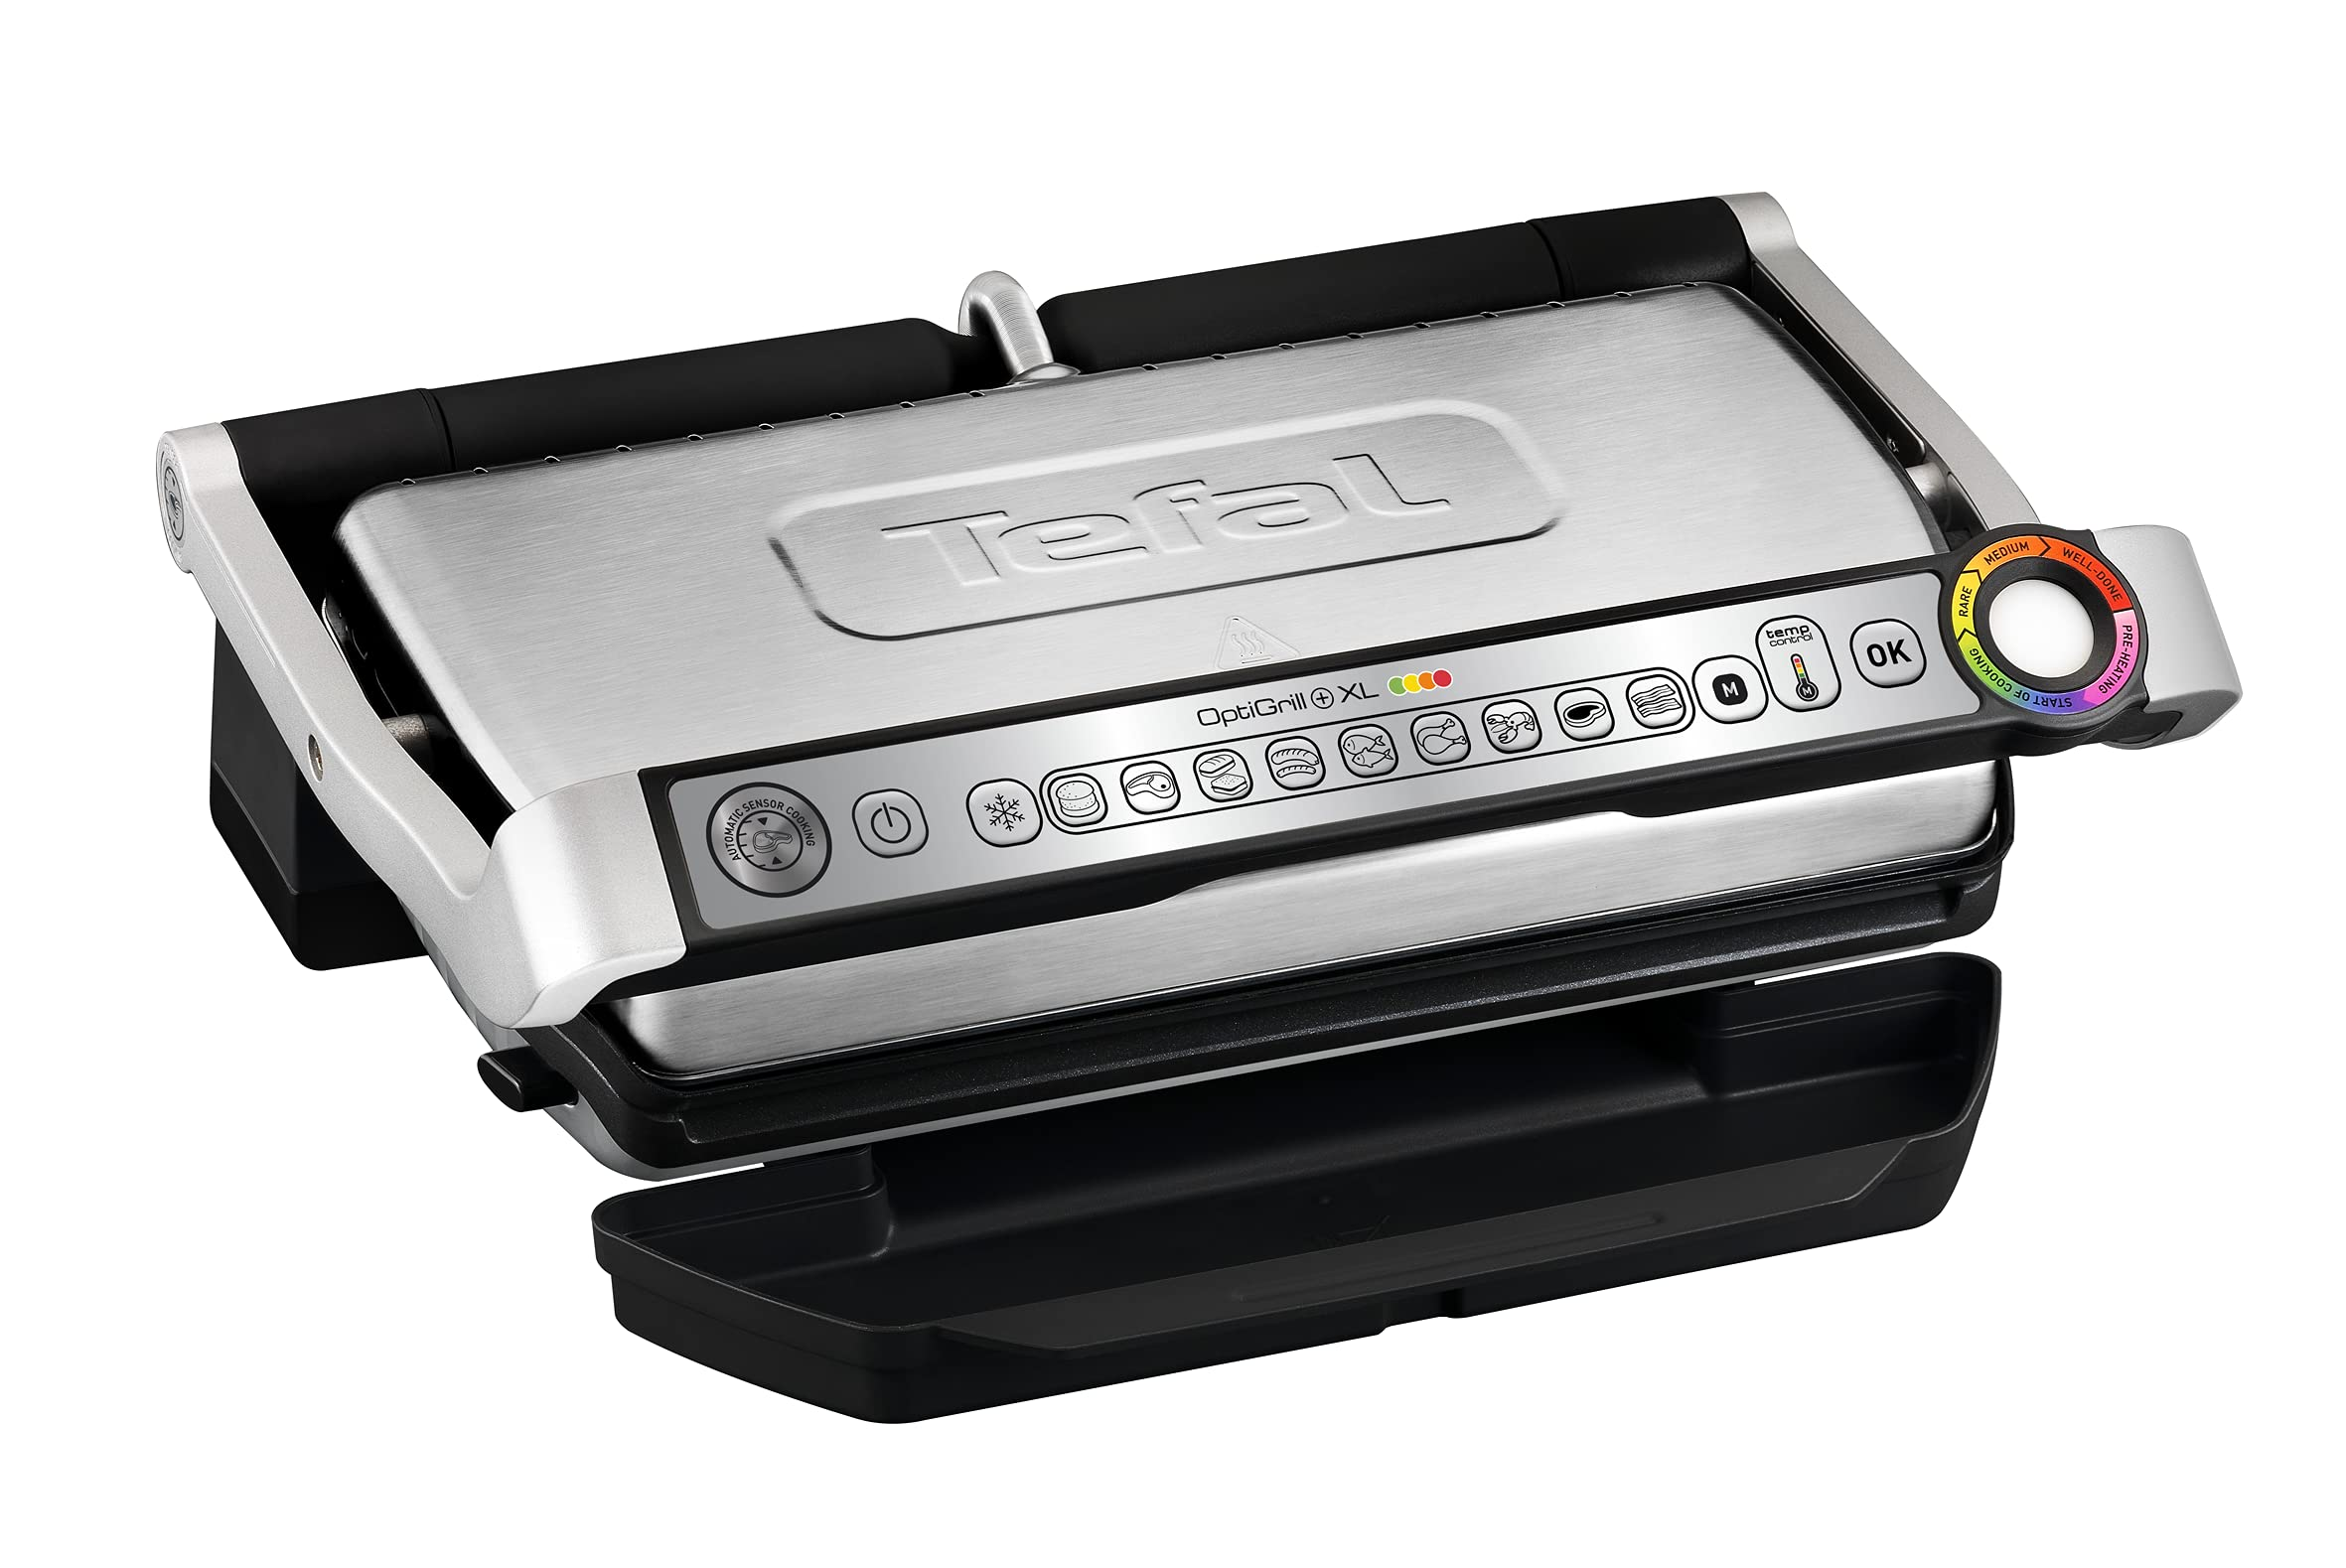 Tefal GC722D16 Optigrill+ XL Grill (8 Portions), 9 Automatic Settings and Cooking Sensor, Stainless Steel